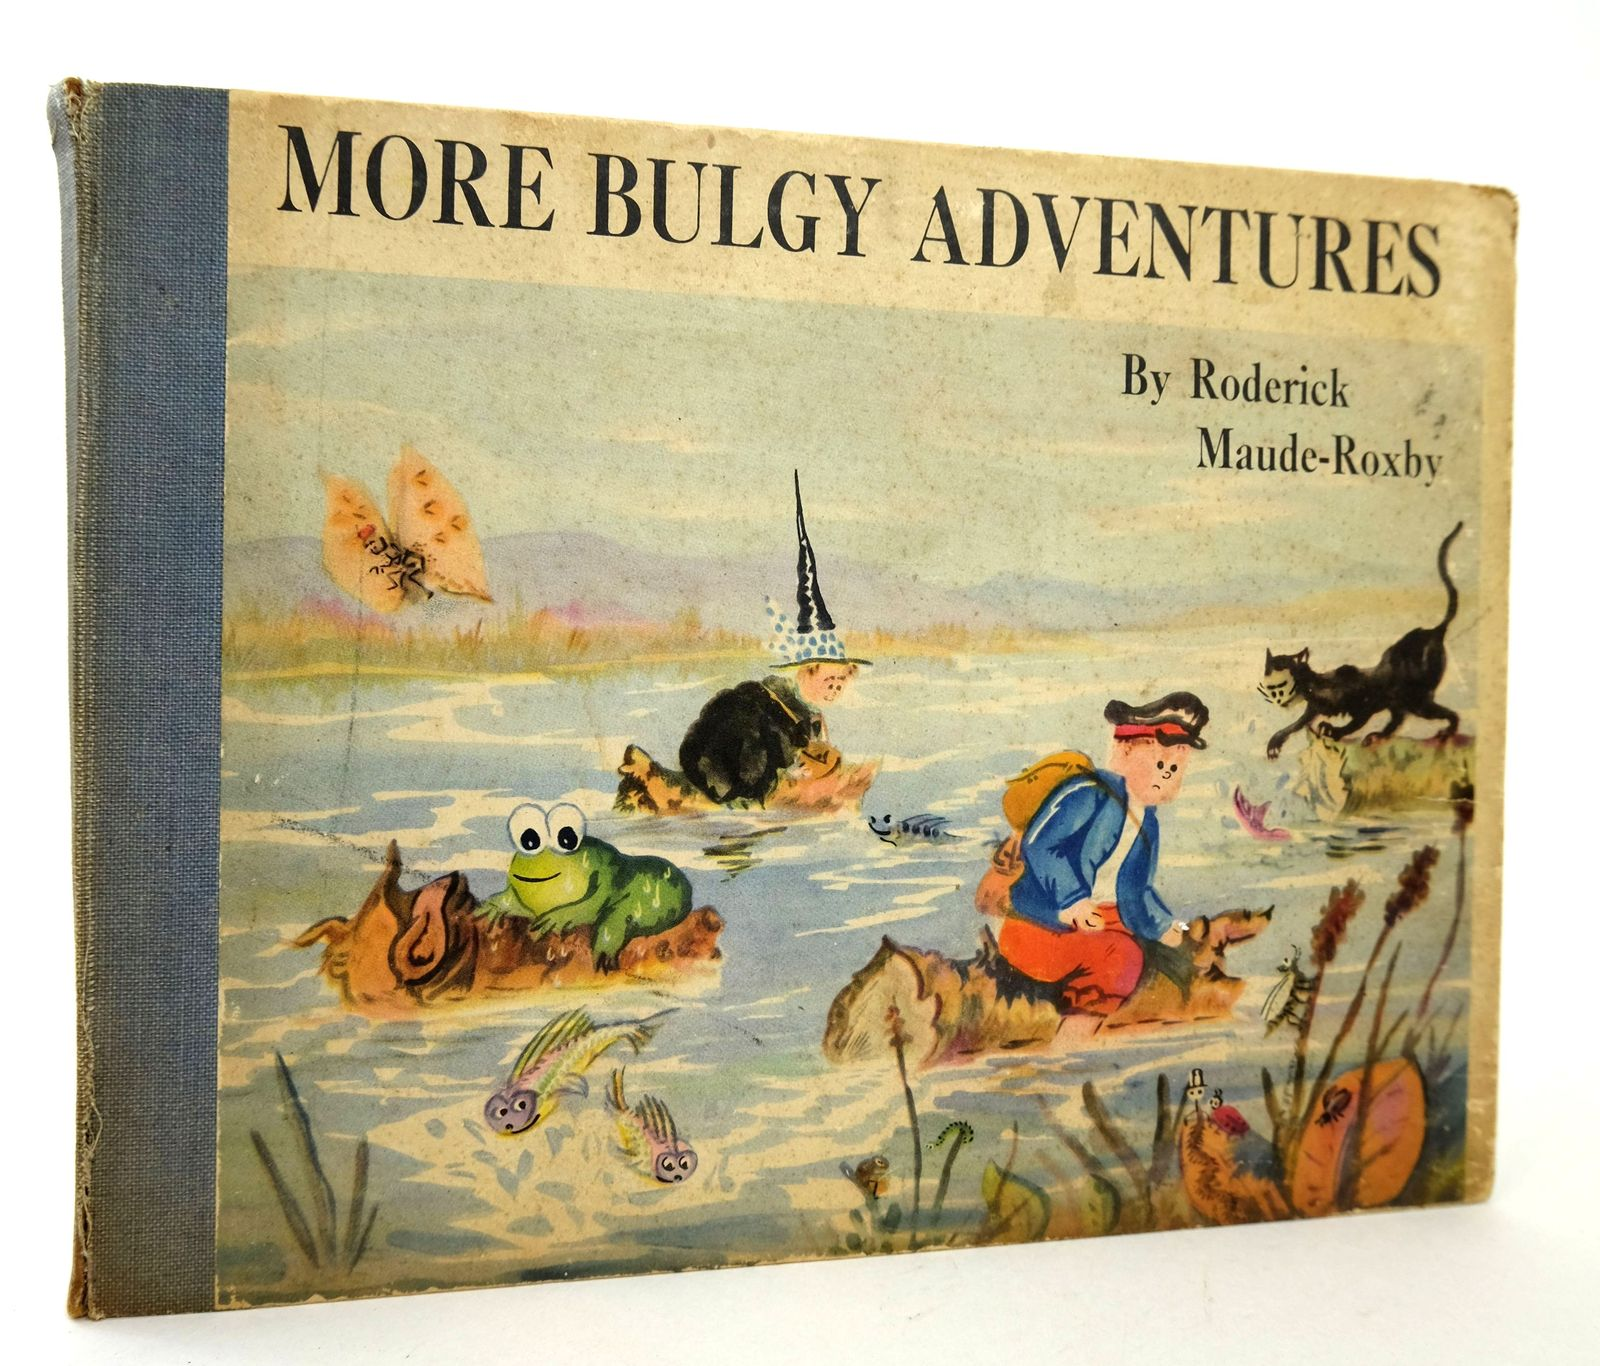 Photo of MORE BULGY ADVENTURES- Stock Number: 1818776